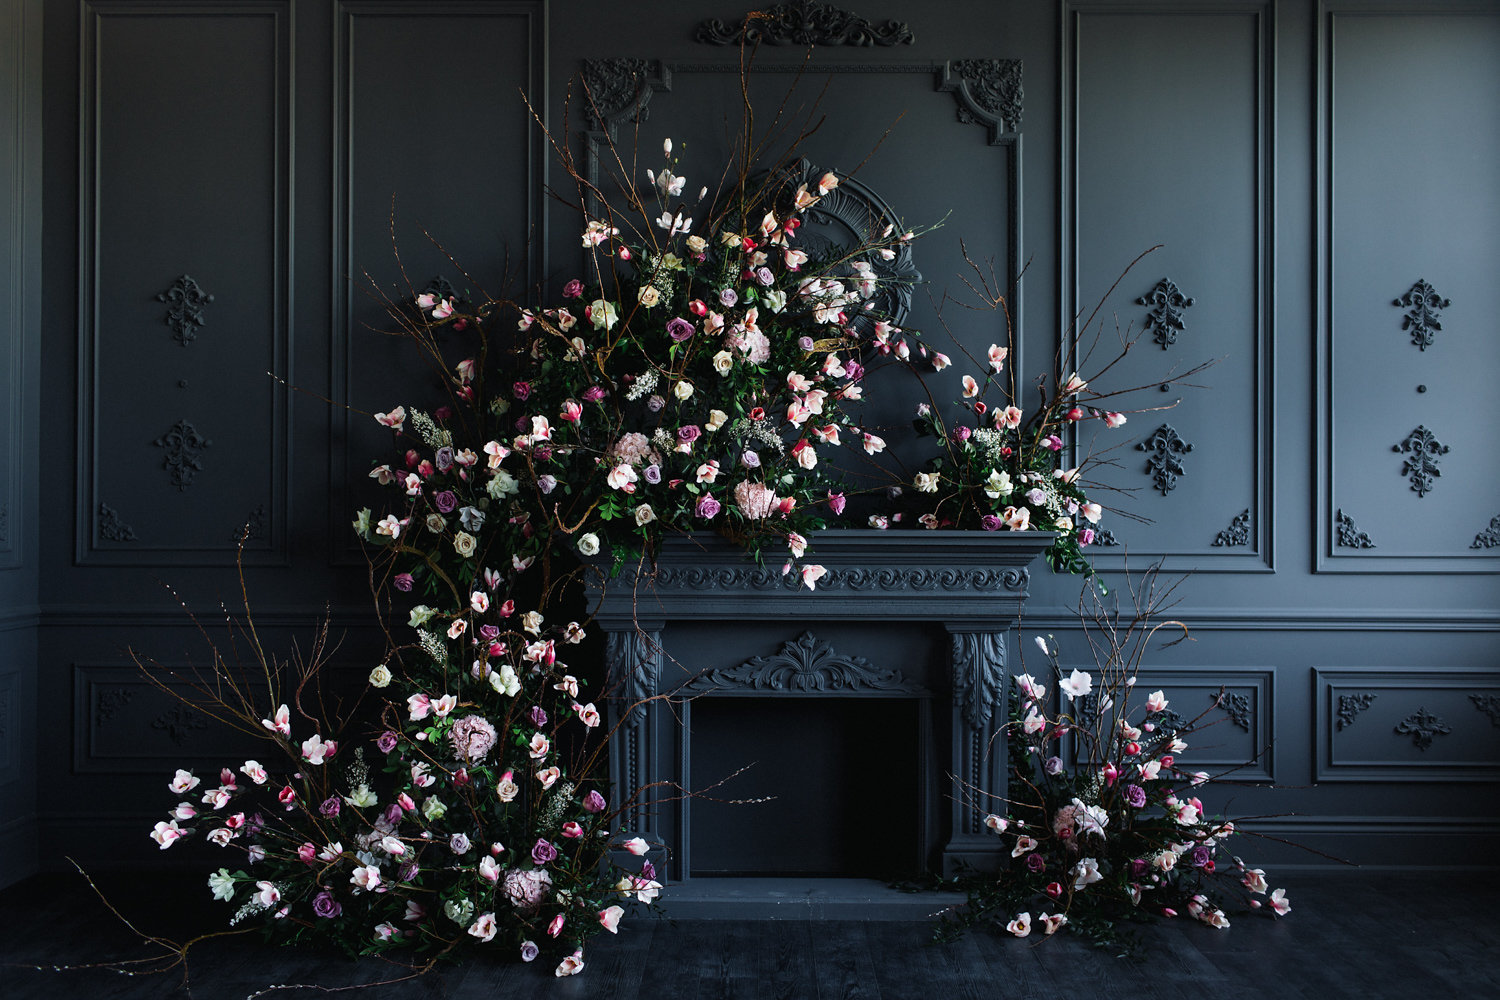 August In Bloom - Ceremony with lush garland - Magnolia Dreams (The Bridal Affair)